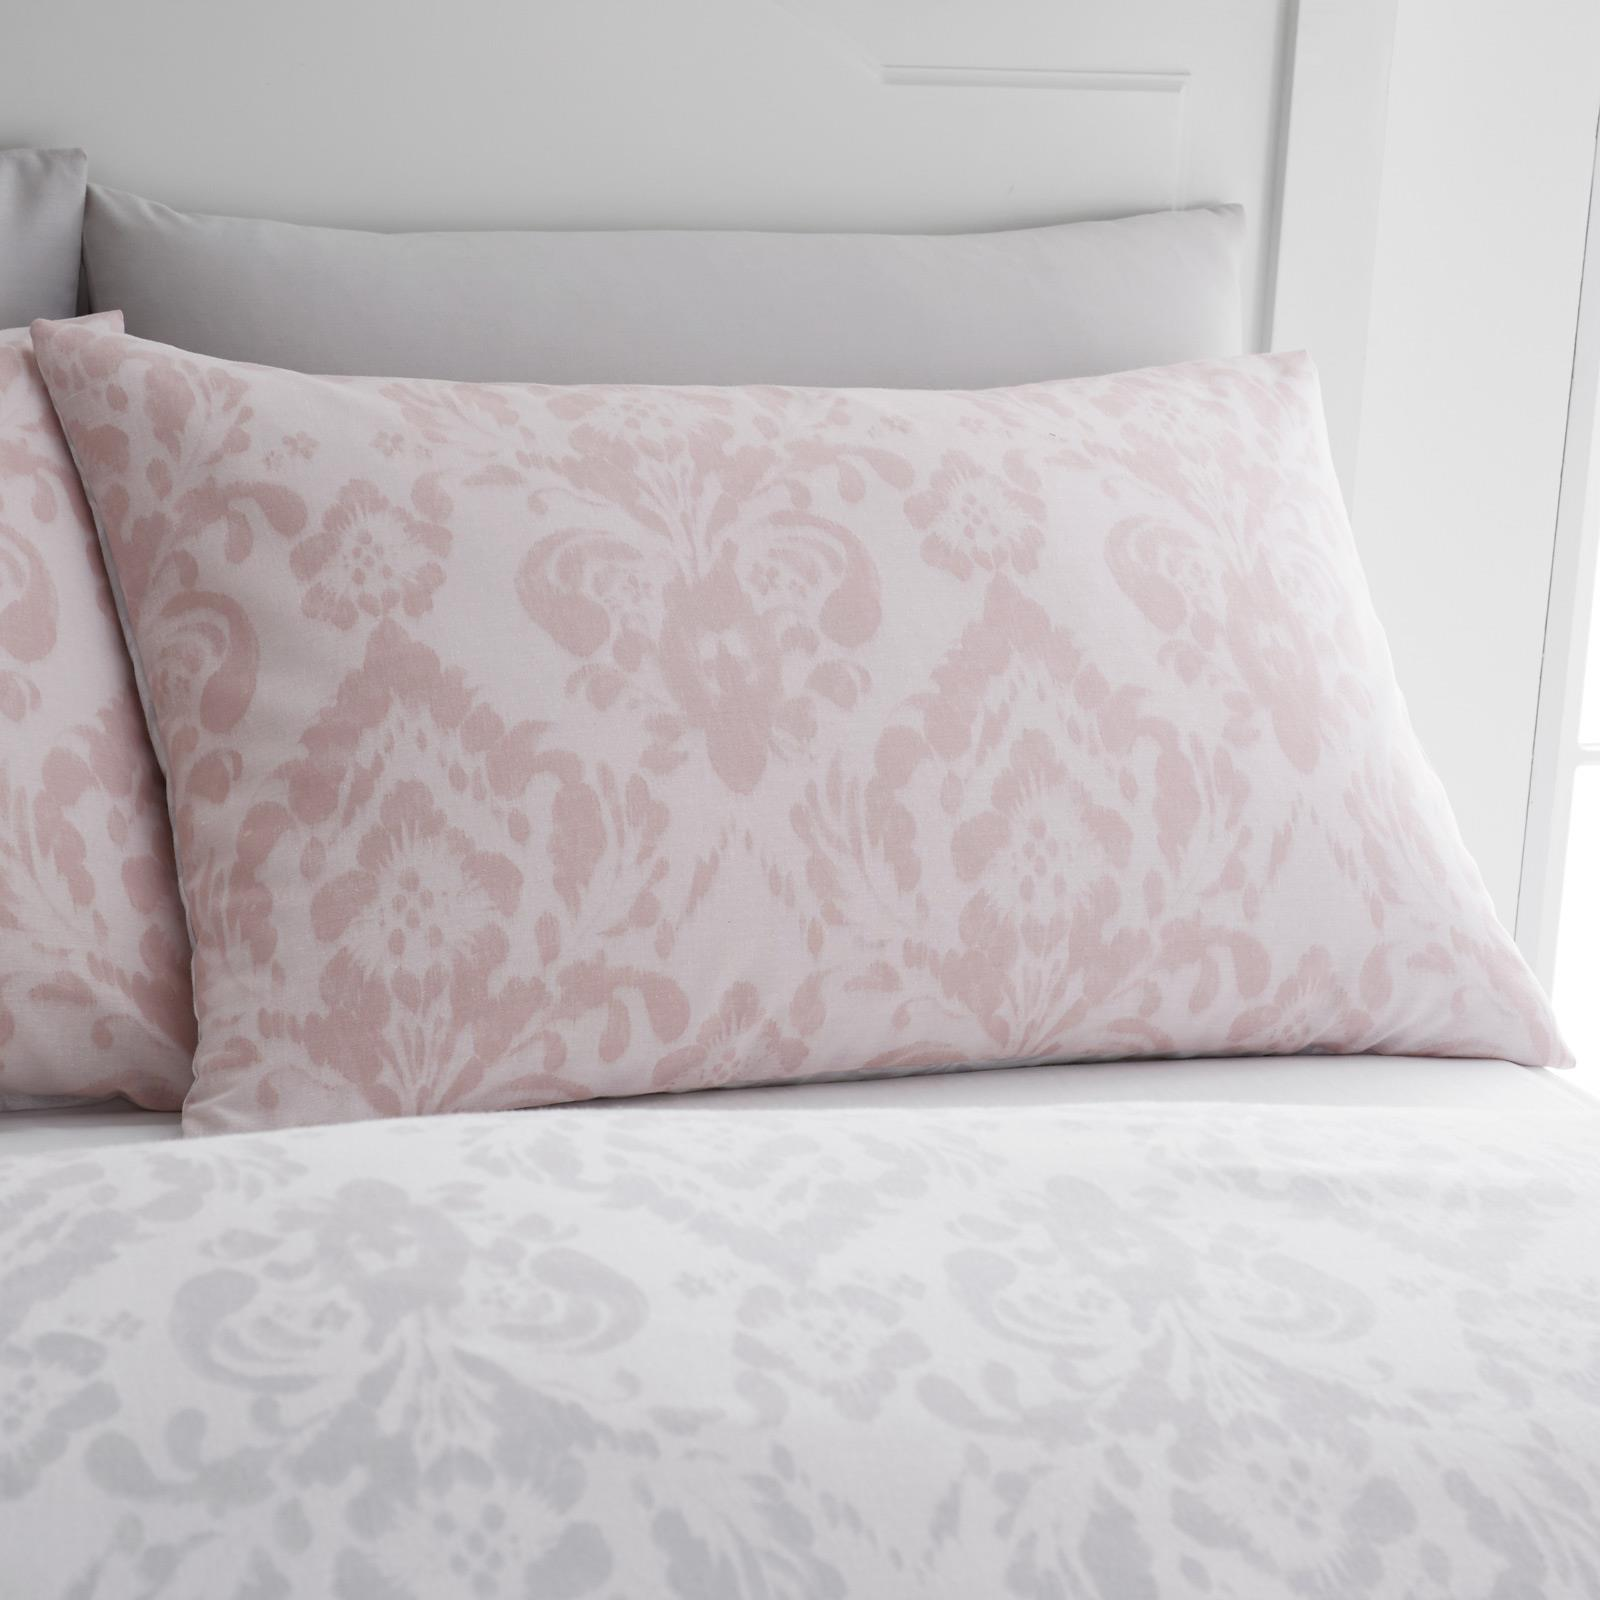 thumbnail 4 - Catherine Lansfield Damask Blush Duvet Covers Pink Grey Quilt Cover Bedding Sets